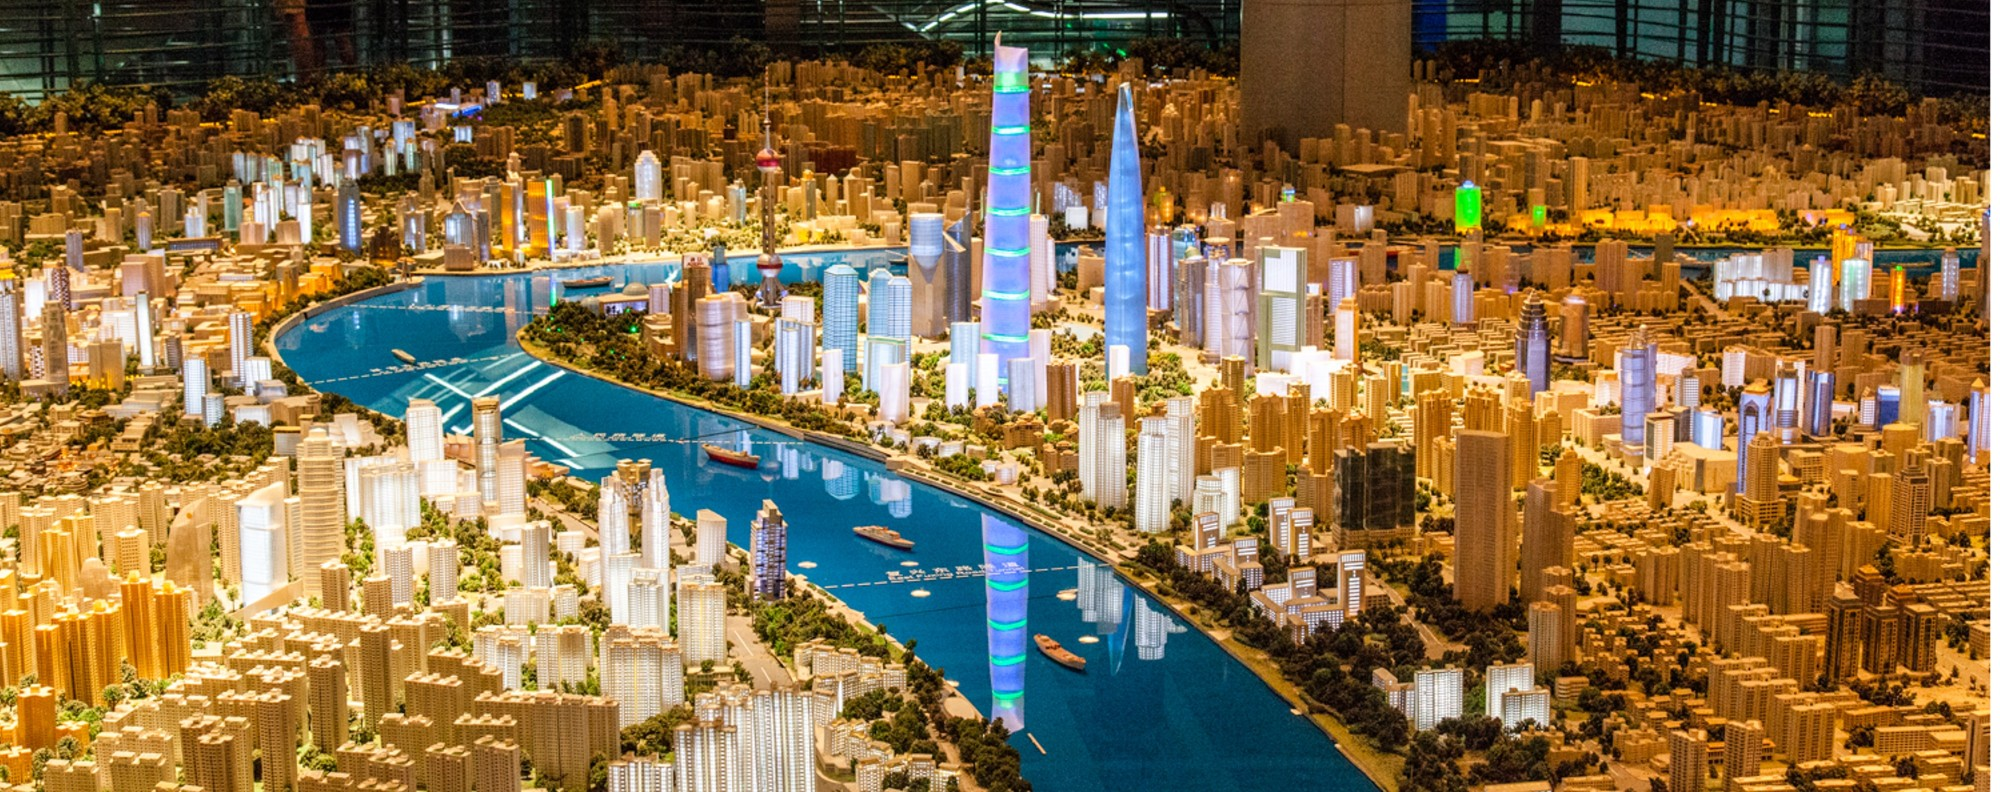 A sprawling model of the city at the Shanghai Urban Planning Exhibition Centre.